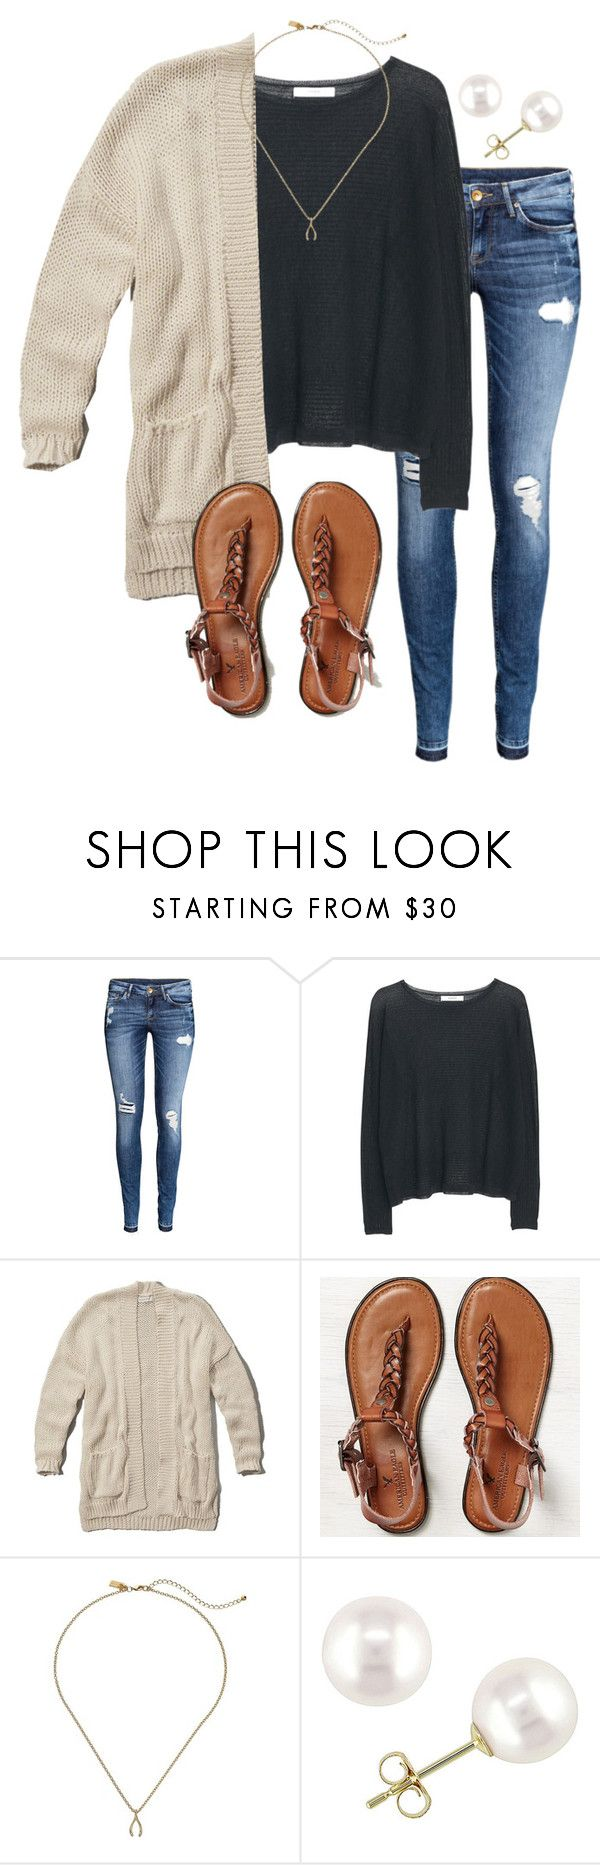 """""""Ootd: Christmas shopping at the mall """" by madelyn-abigail ❤ liked on Polyvore featuring H&M, MANGO, Abercrombie & Fitch, American Eagle Outfitters, Kate Spade and Miadora"""